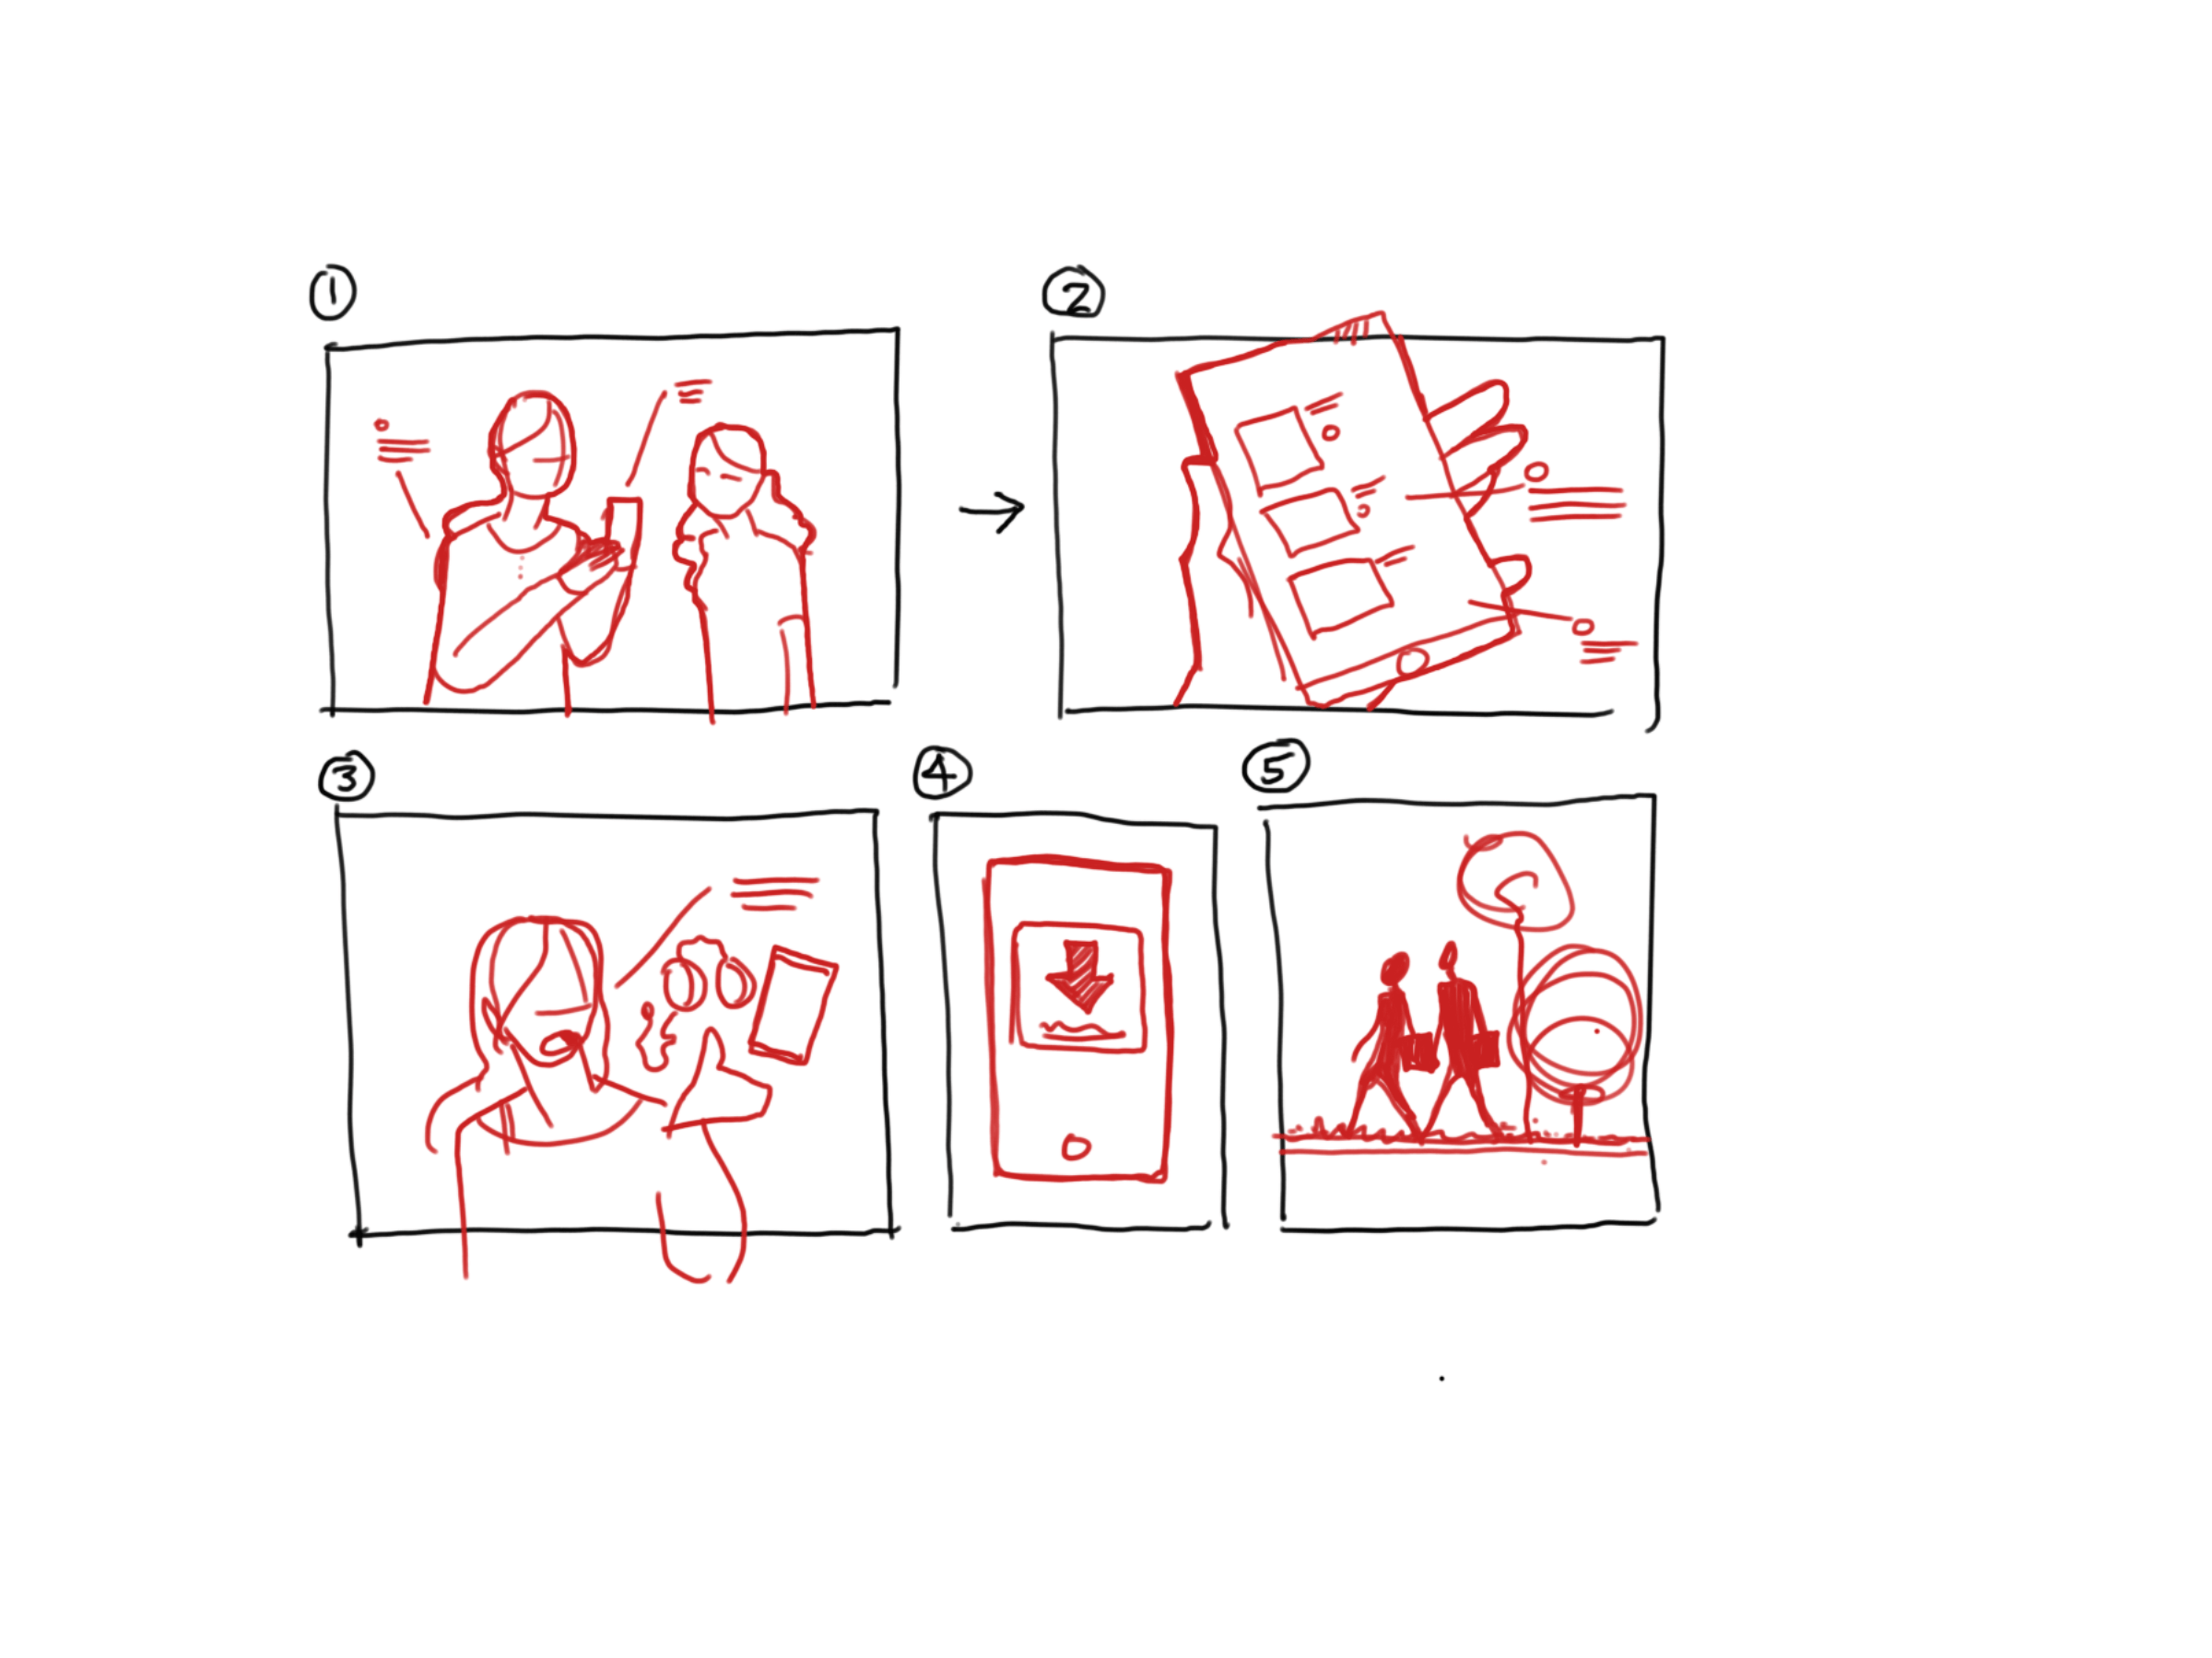 ...and storyboards of how life could be improved.